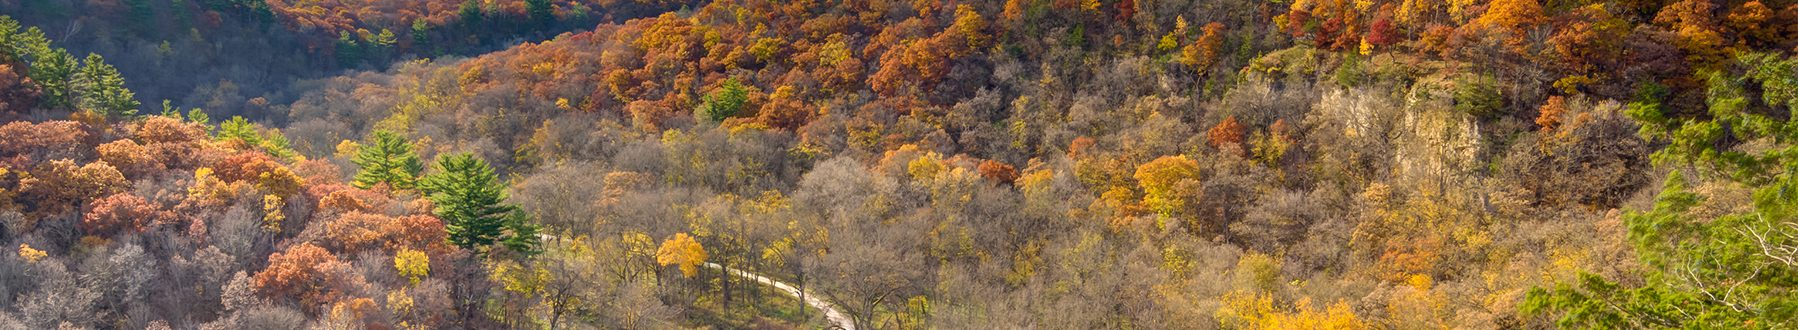 Landscape photo of the Whitewater valley with fall color bluffs